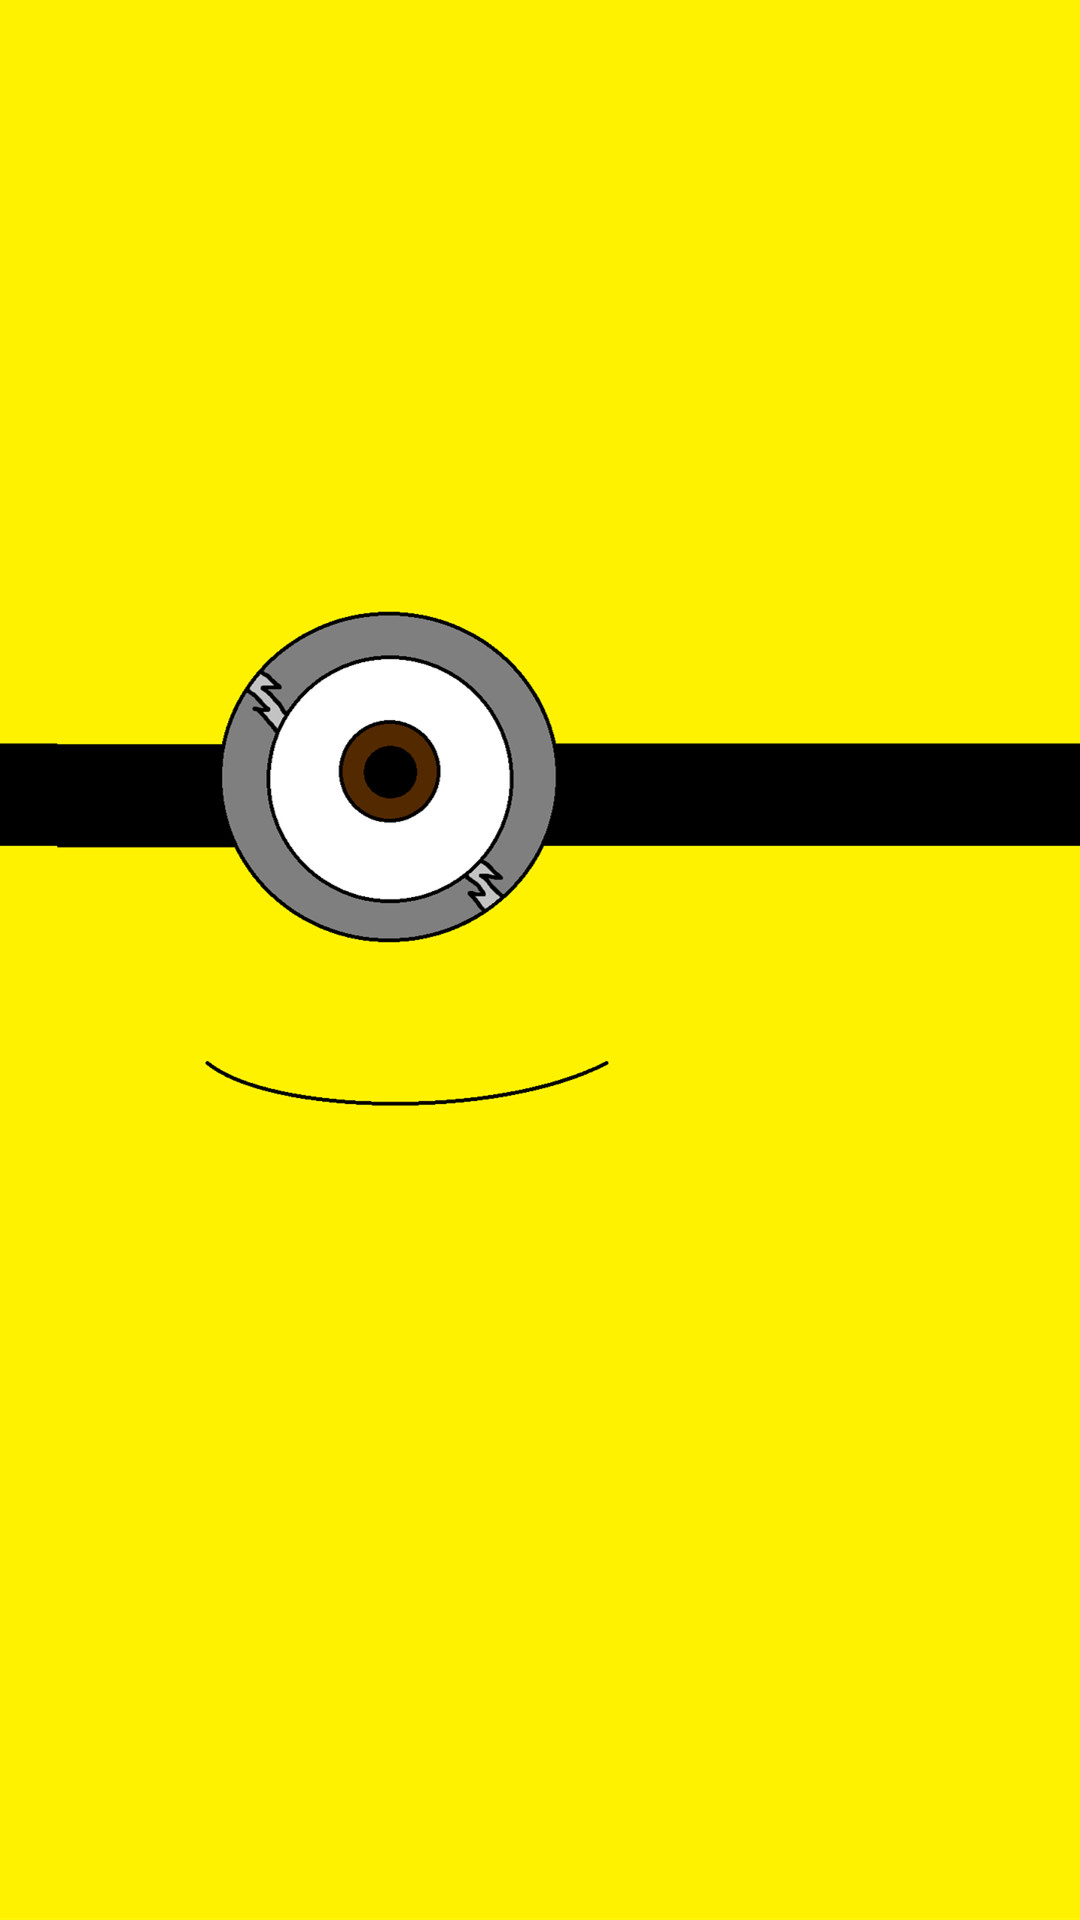 2014 Halloween all yellow one big eye minion iphone 6 plus wallpaper –  Despicable Me iphone